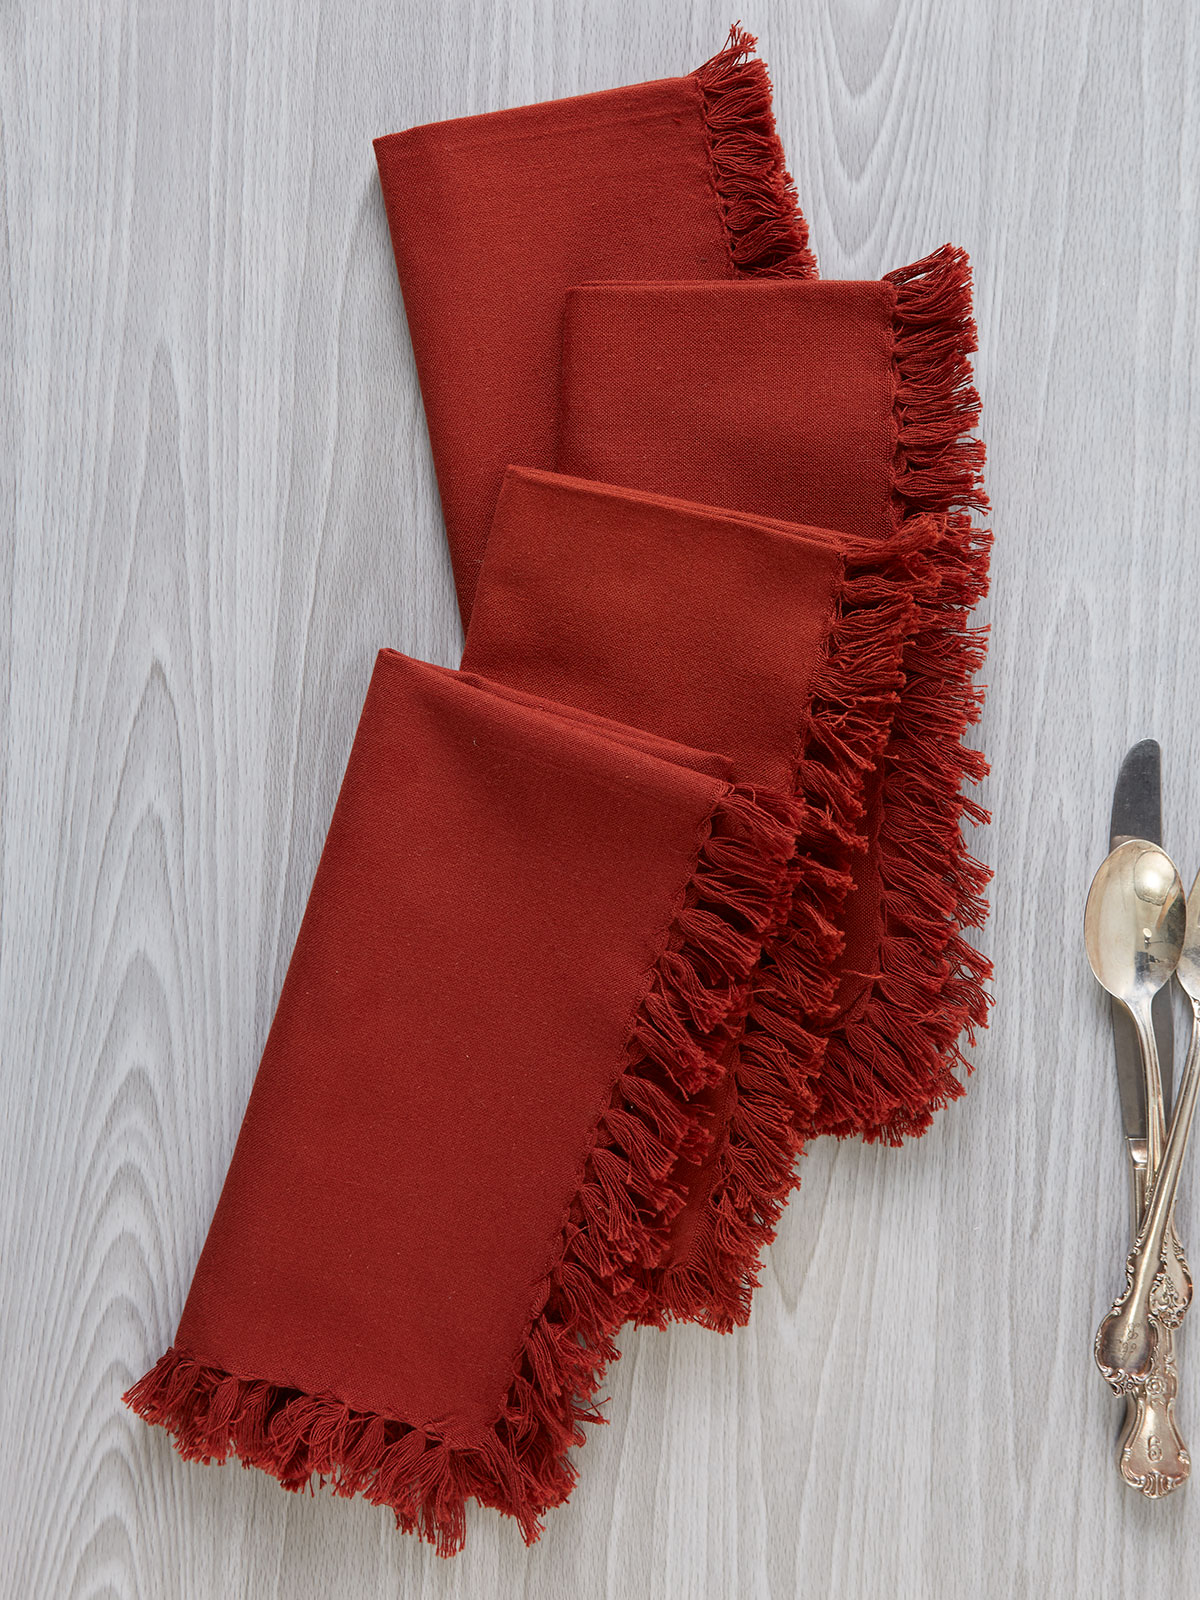 Essential Napkin Set of 4 - Rust